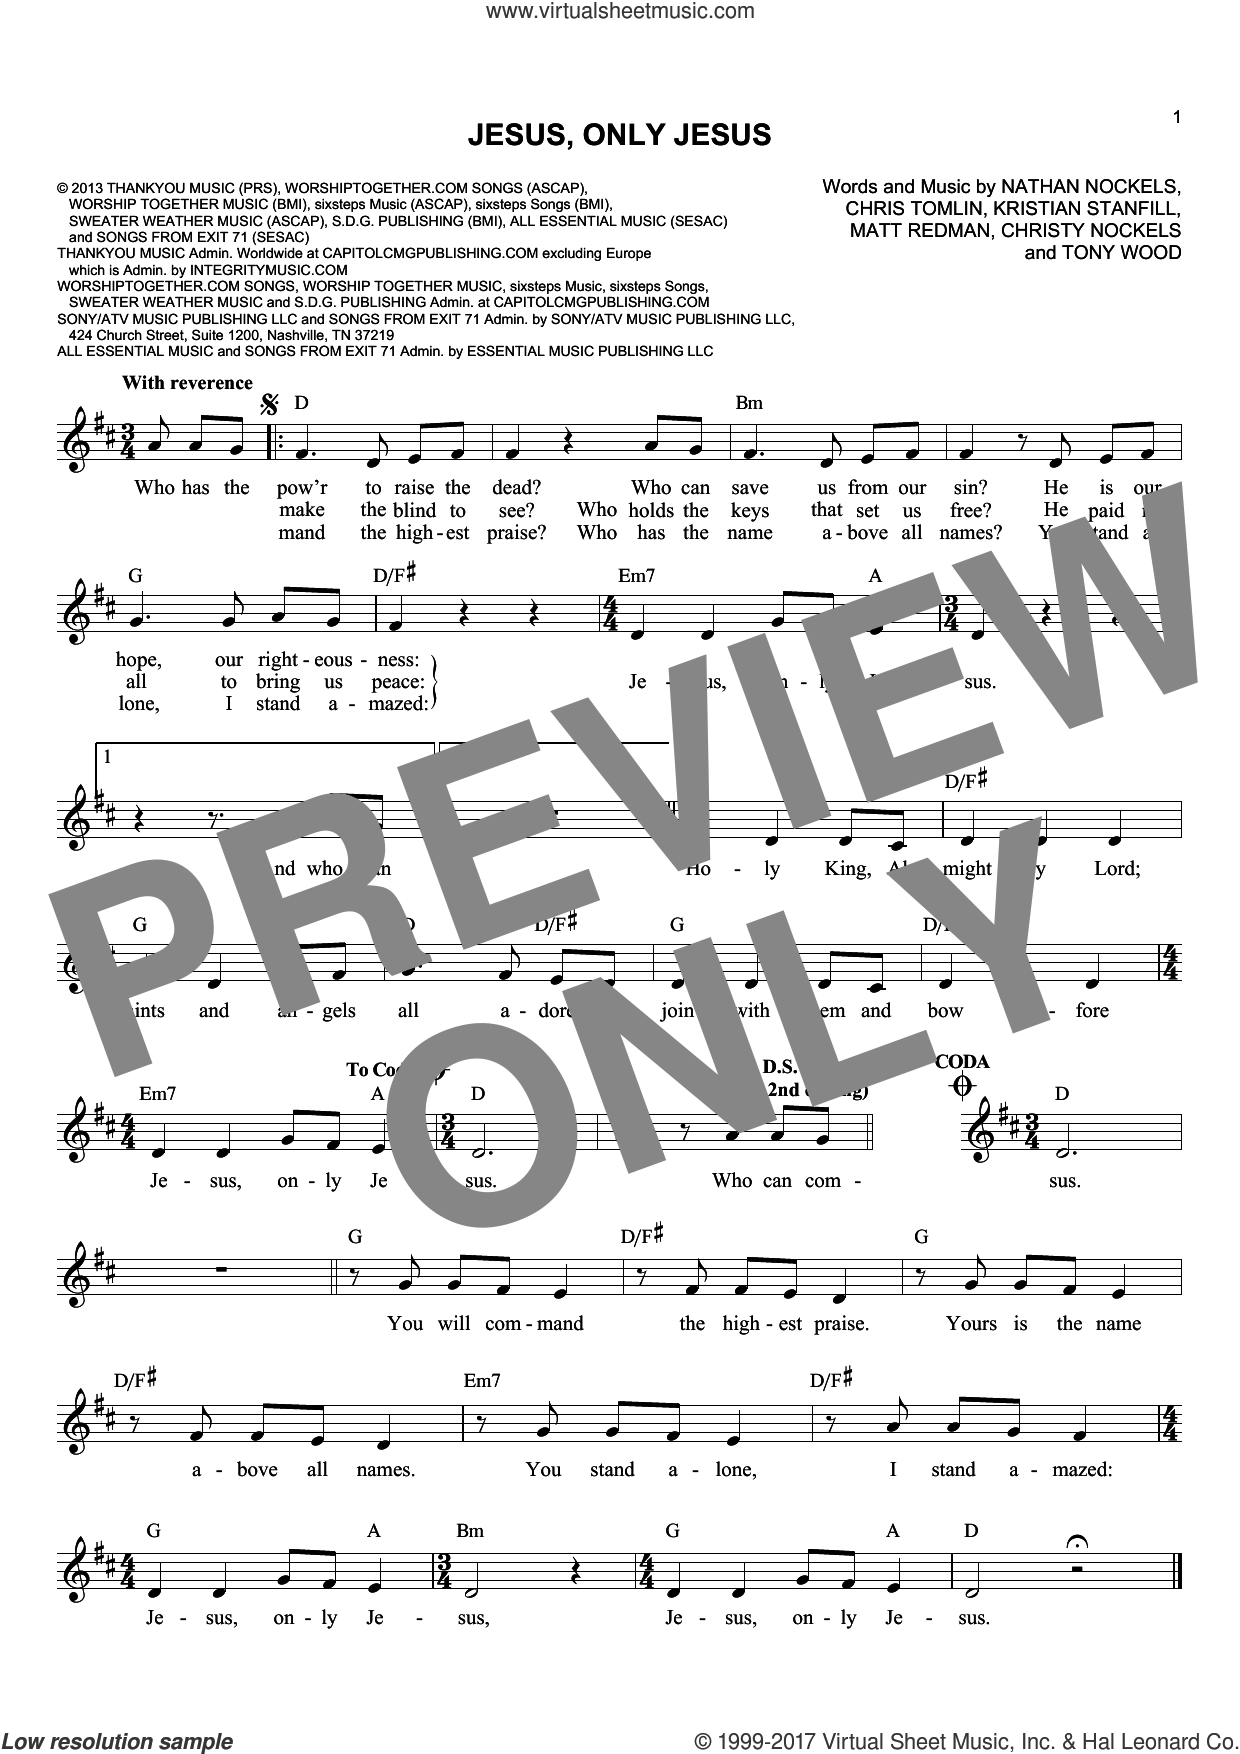 Jesus, Only Jesus sheet music for voice and other instruments (fake book) by Passion, Chris Tomlin, Christy Nockels, Kristian Stanfill and Matt Redman, intermediate. Score Image Preview.